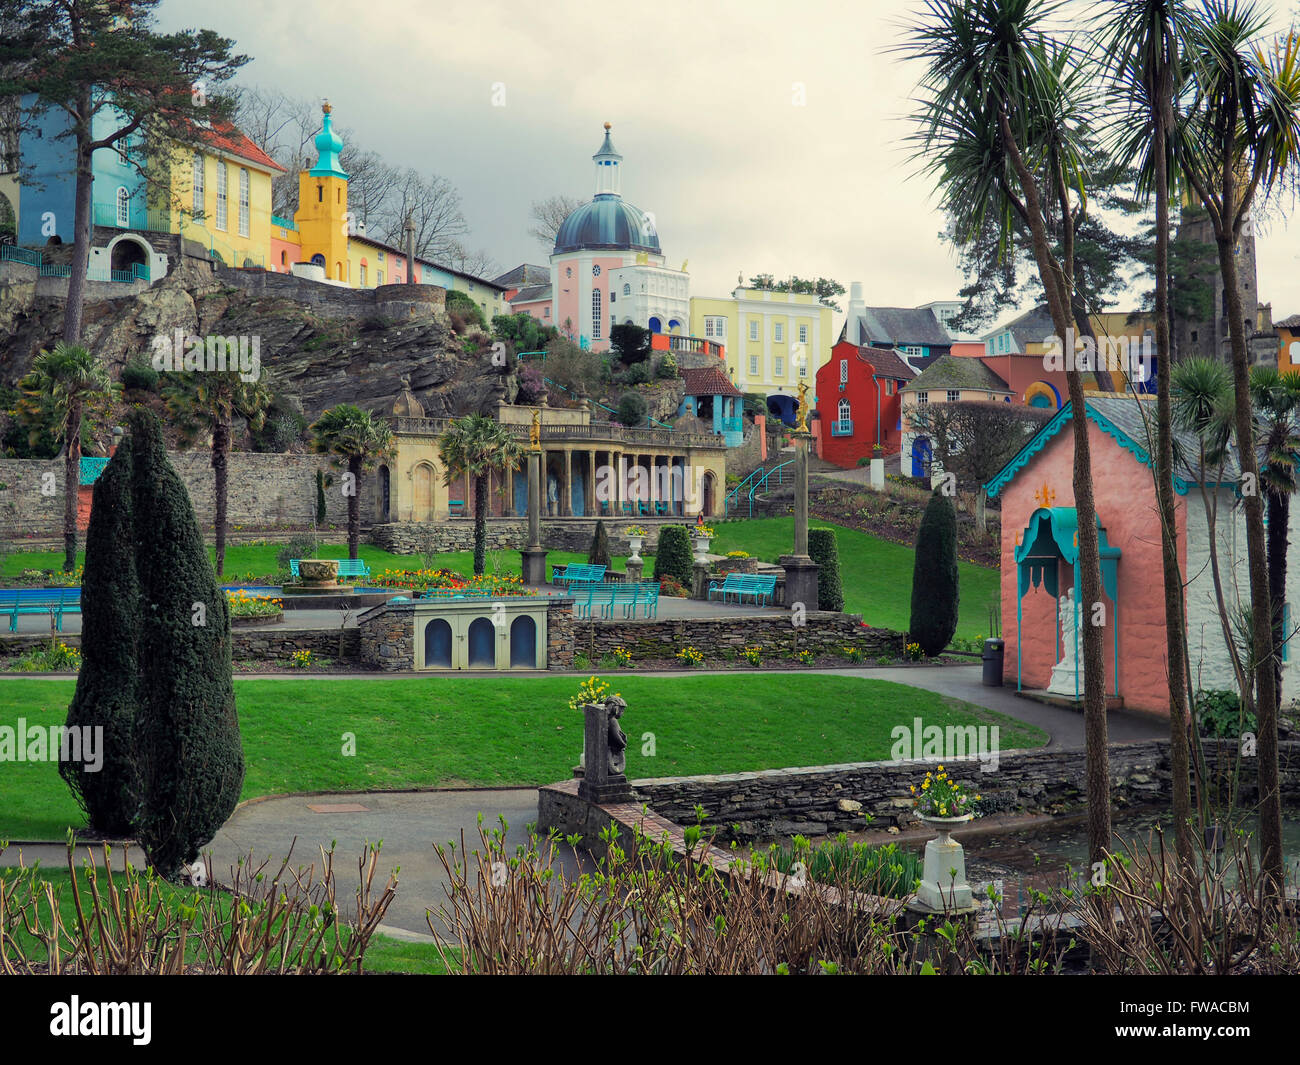 Photograph of the famous village of Portmeirion and its gardens in North Wales. Stock Photo